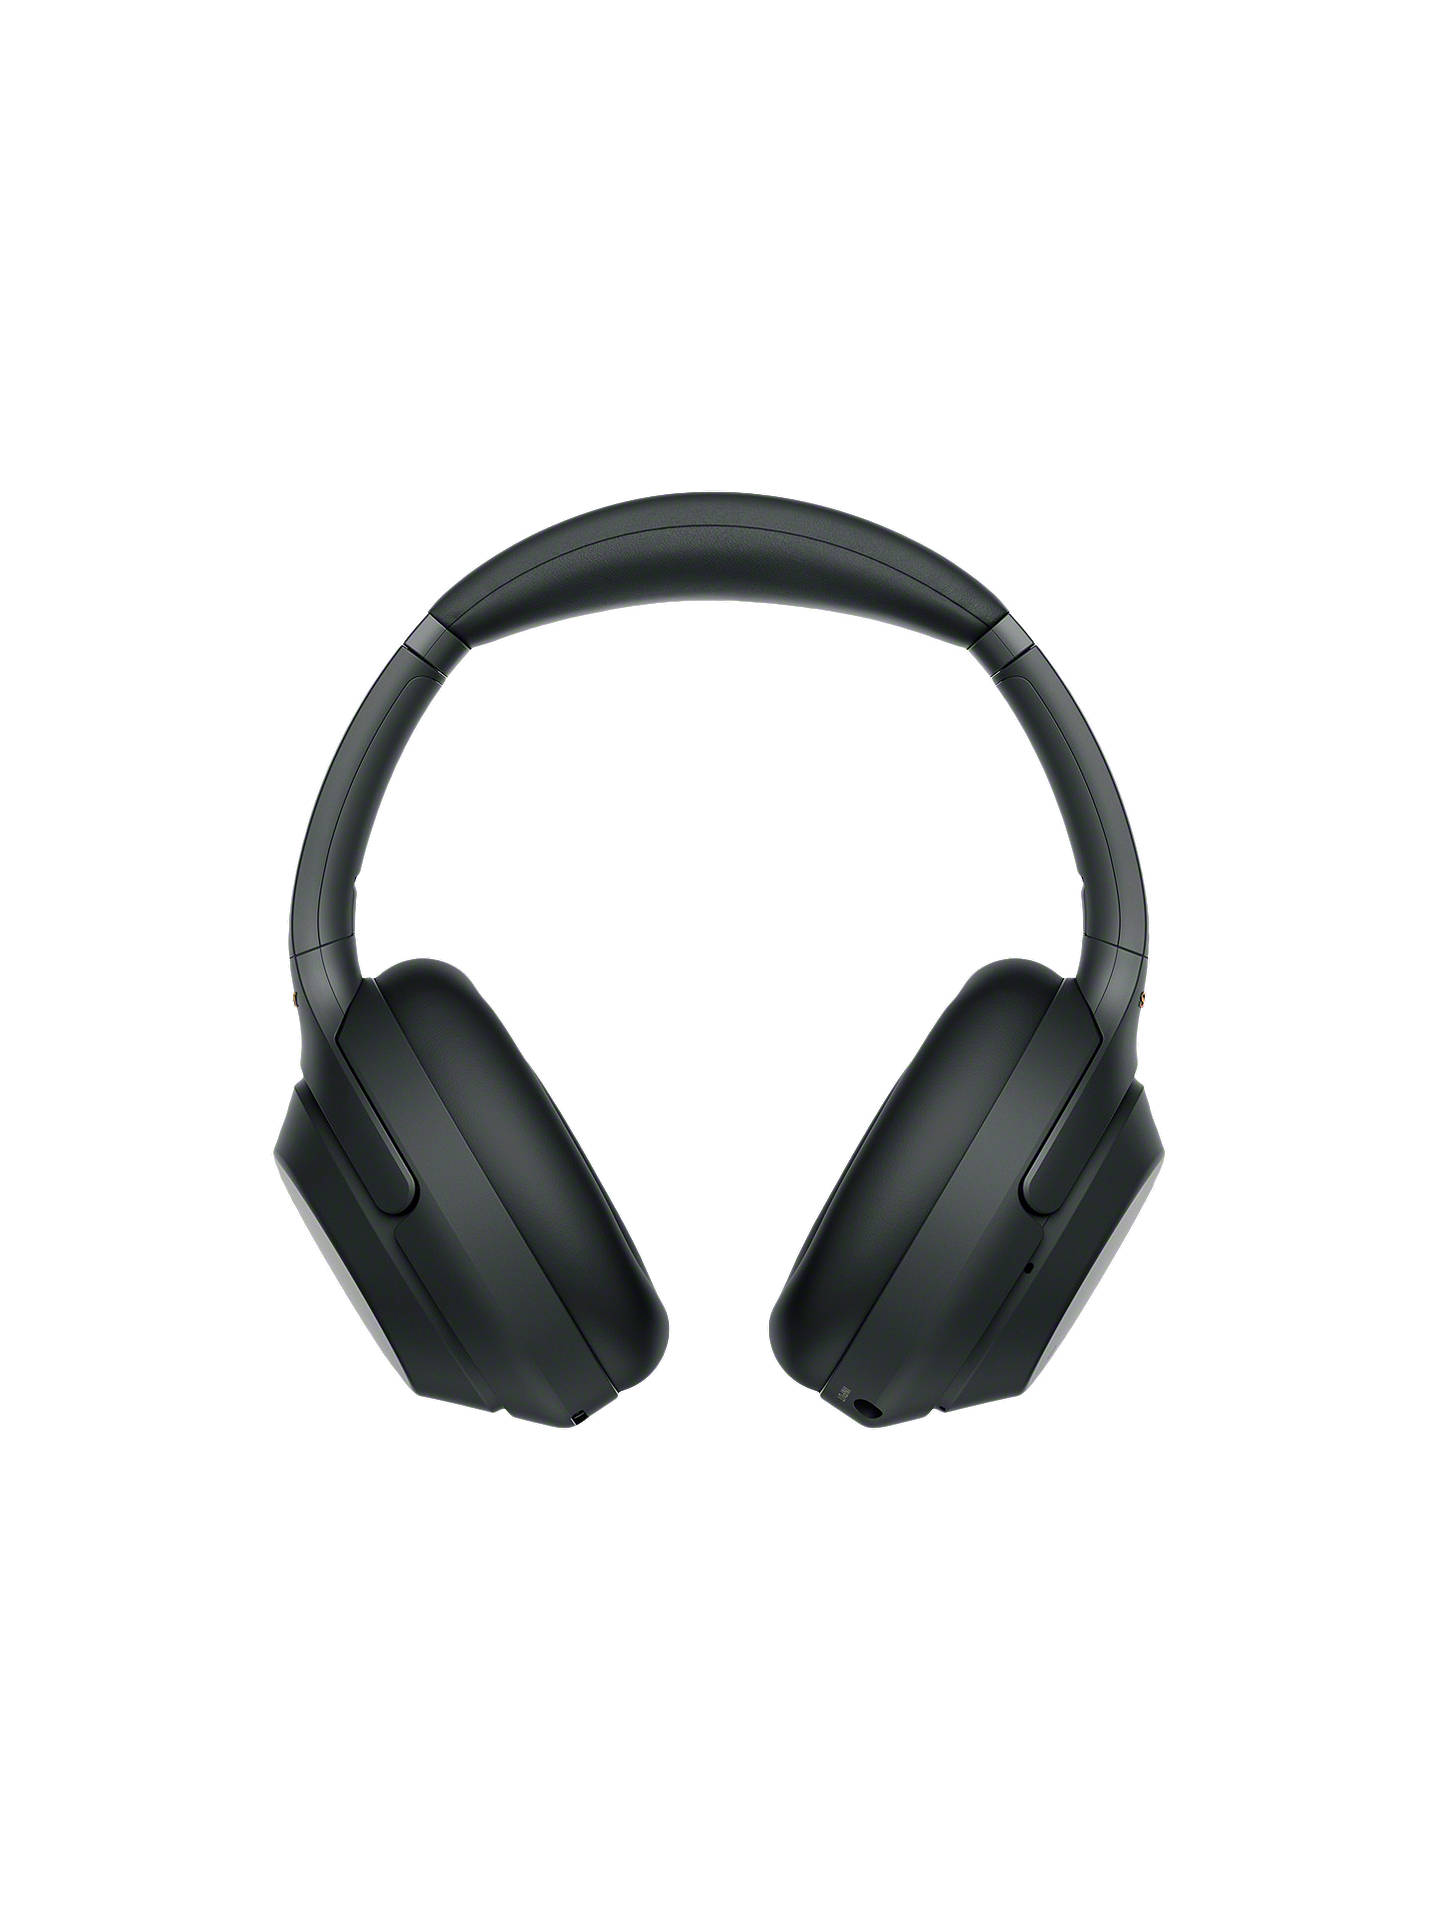 Sony bluetooth headphones with microphone